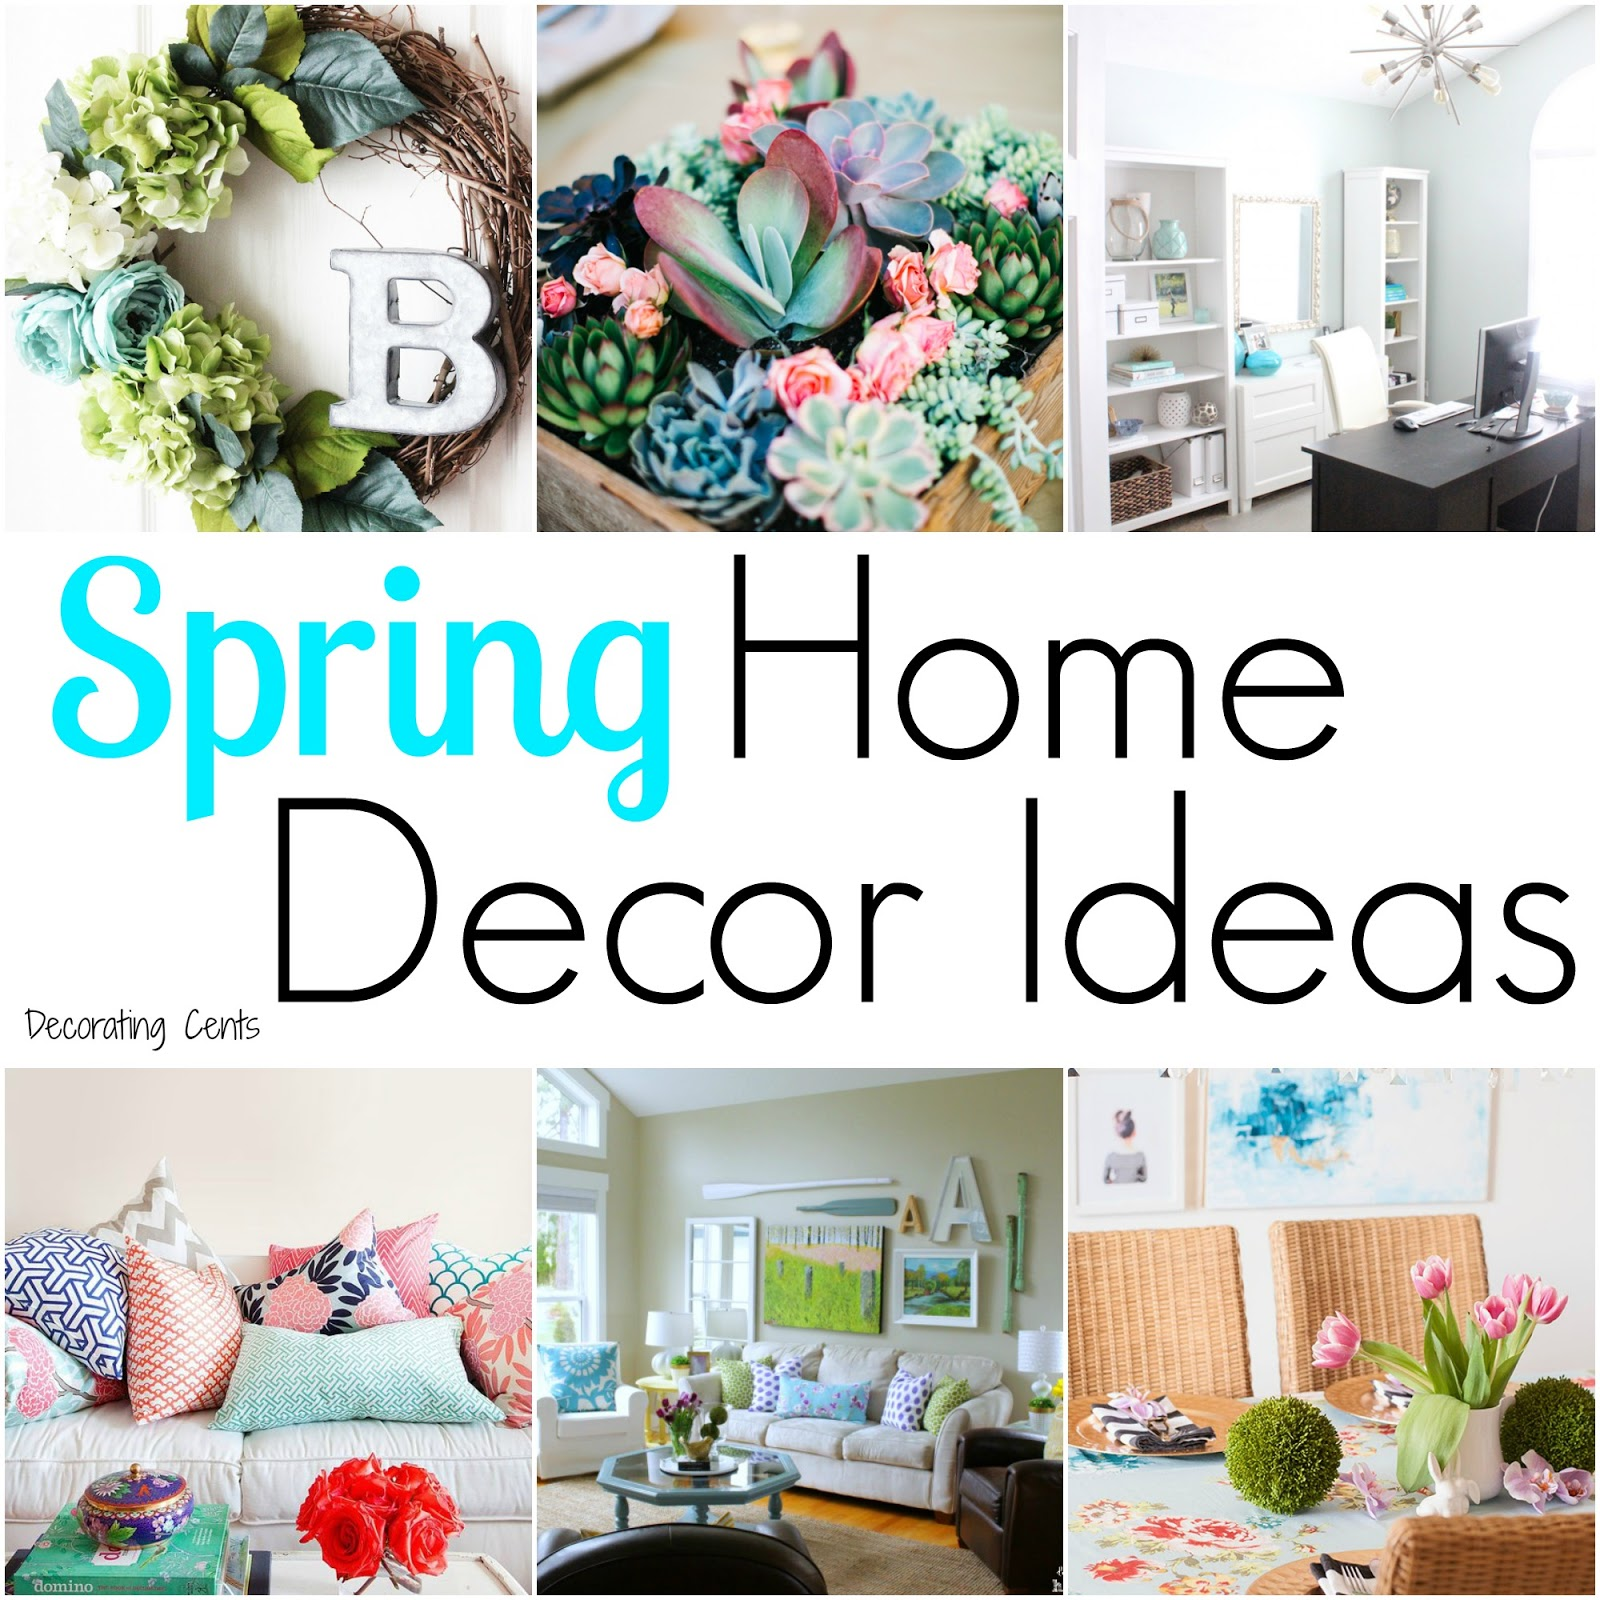 Decorating cents spring home decor ideas for Where to get home decor